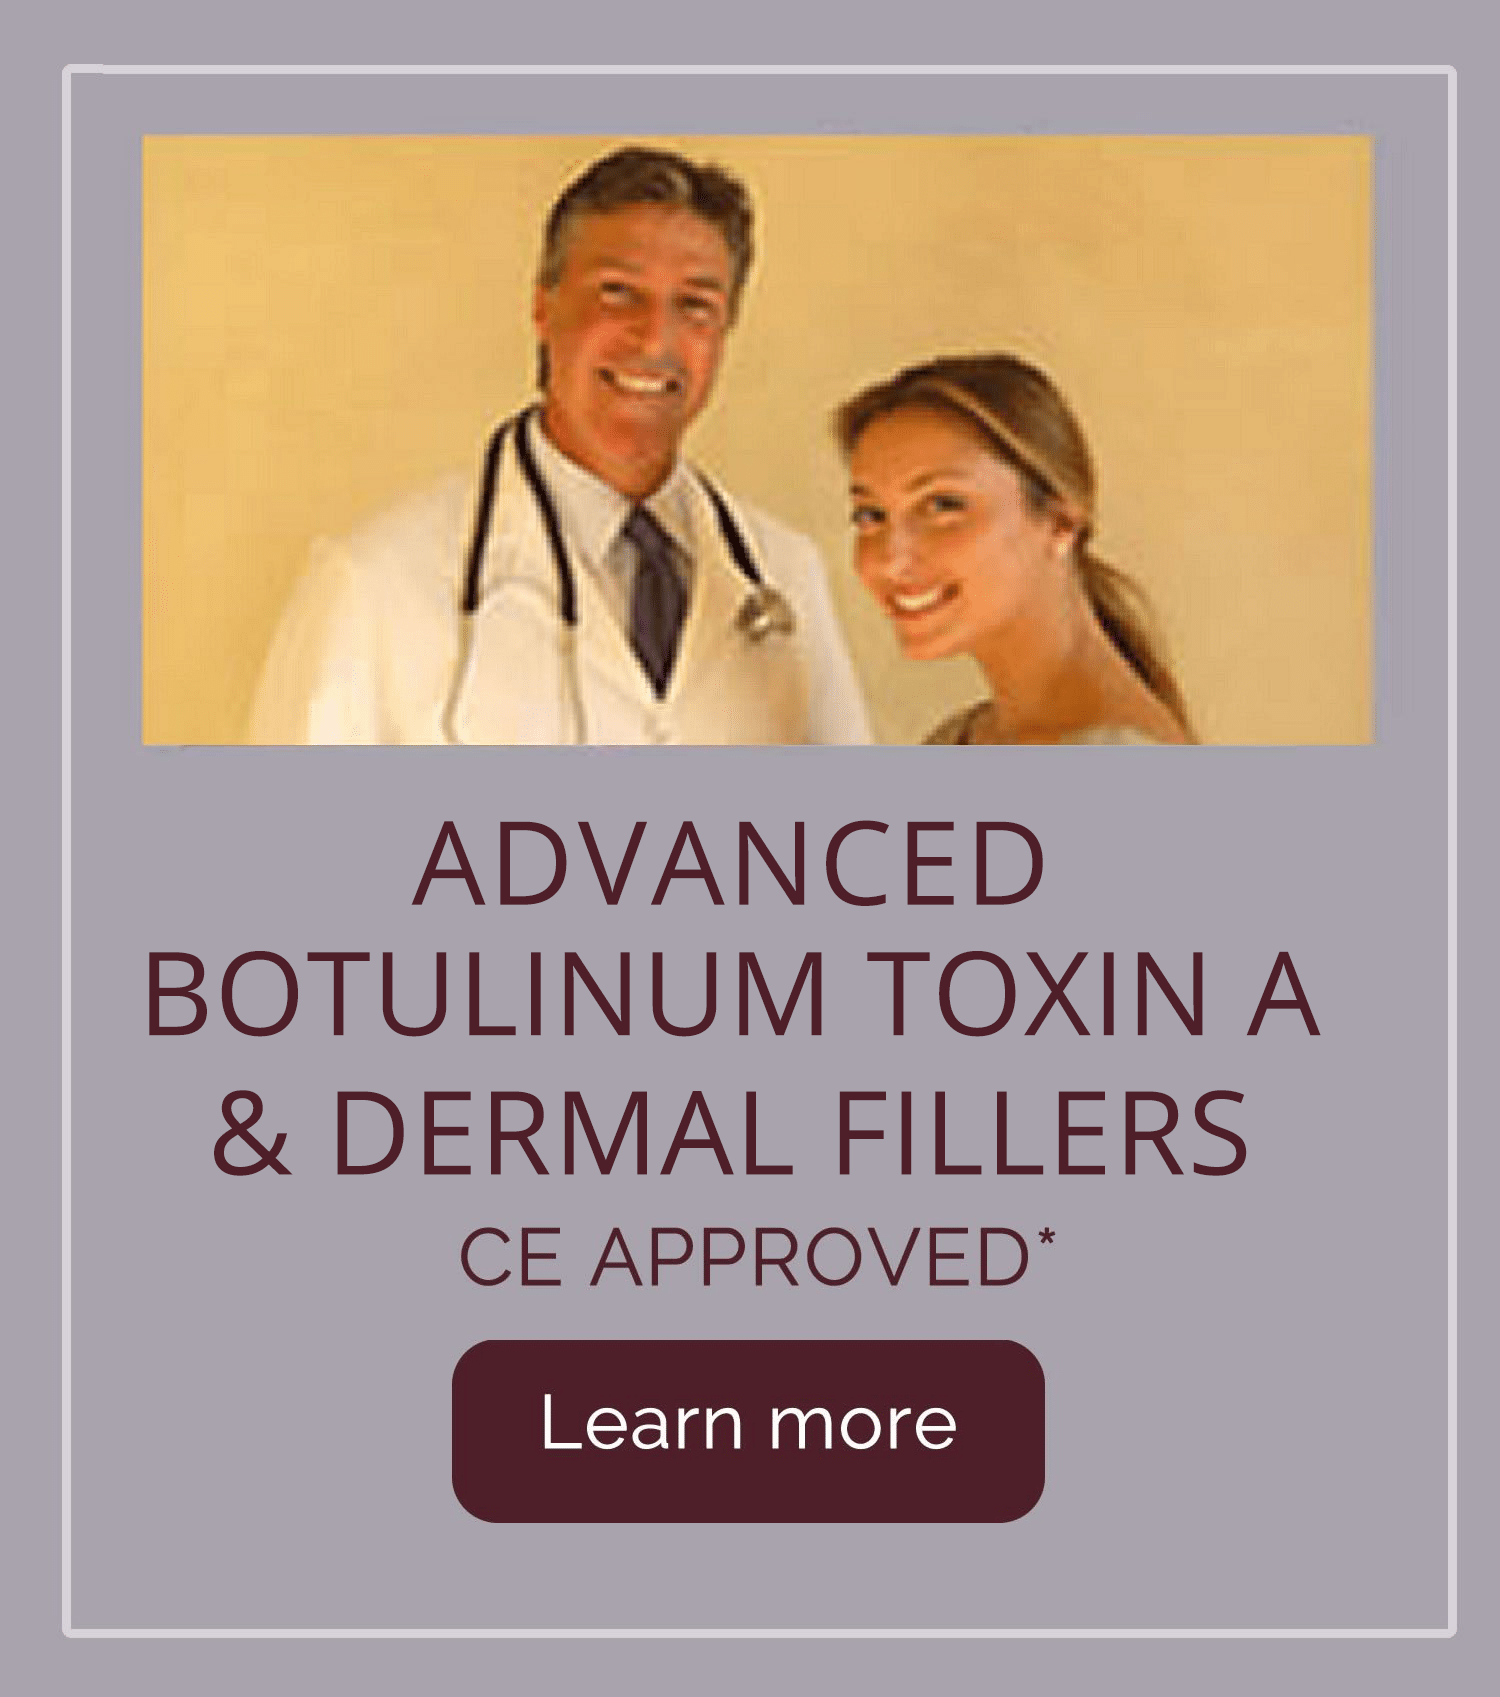 Advanced Botulinum Toxin A